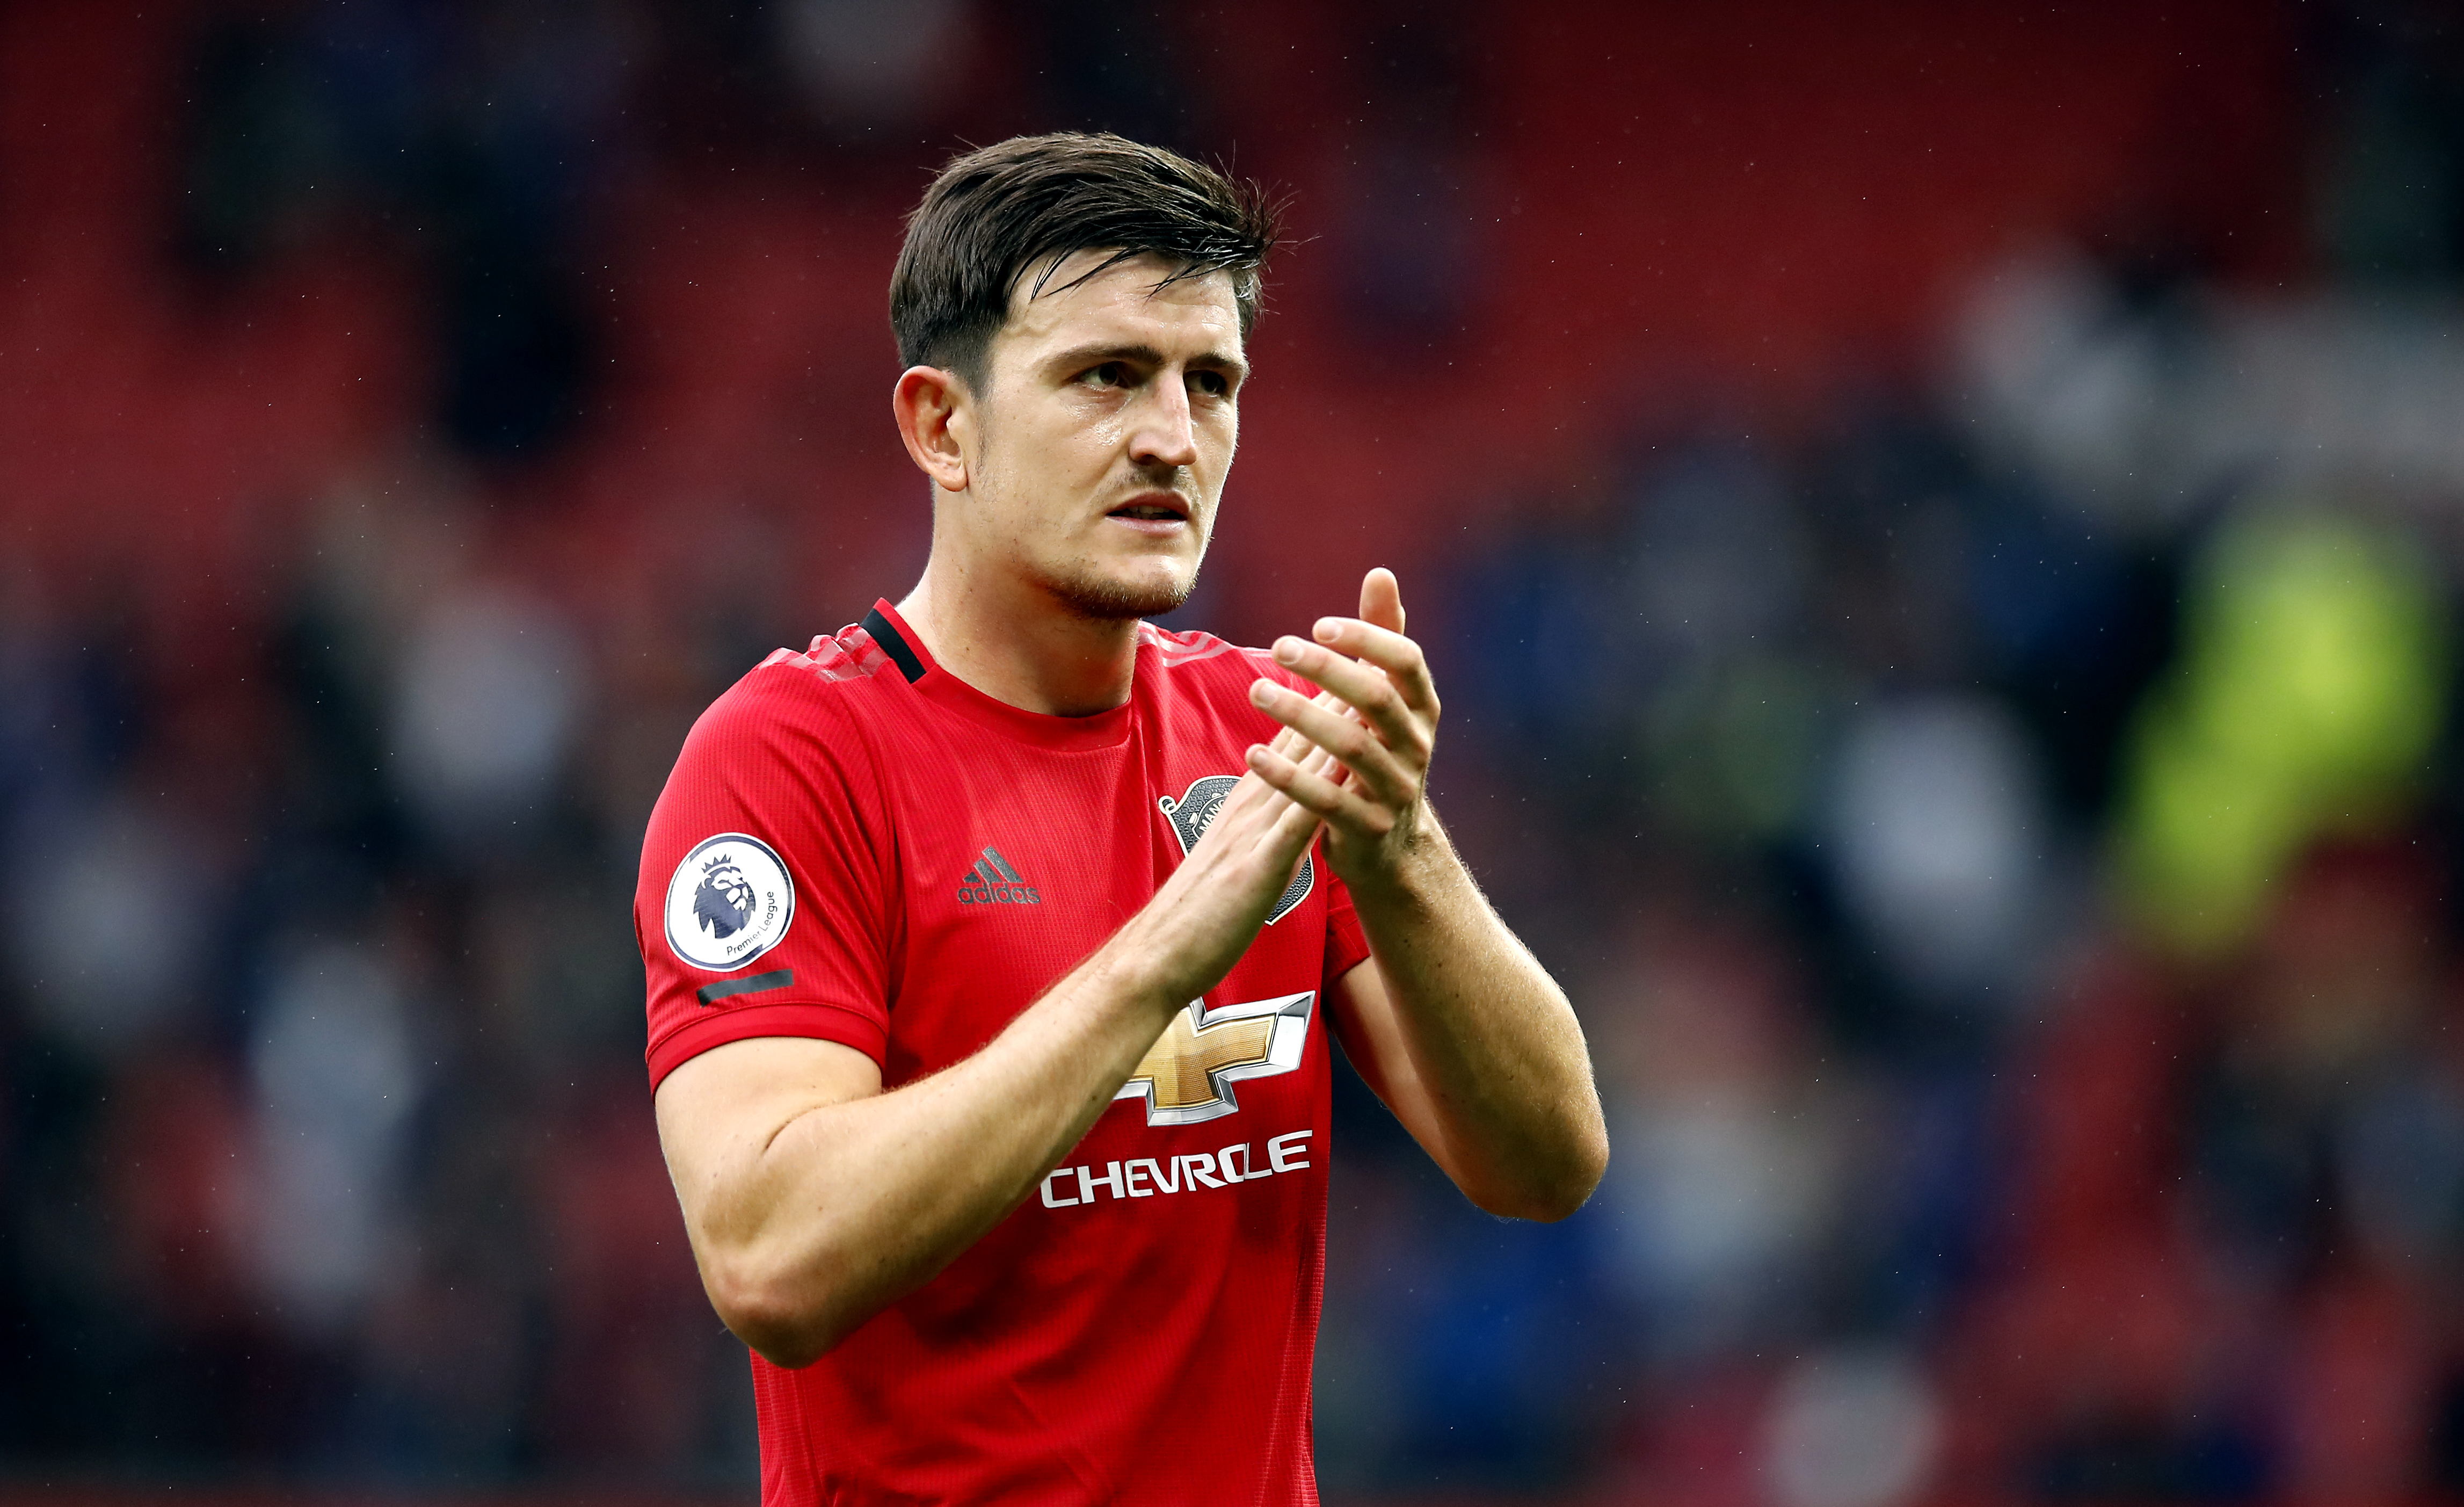 Harry Maguire was named man of the match on Sunday at Old Trafford